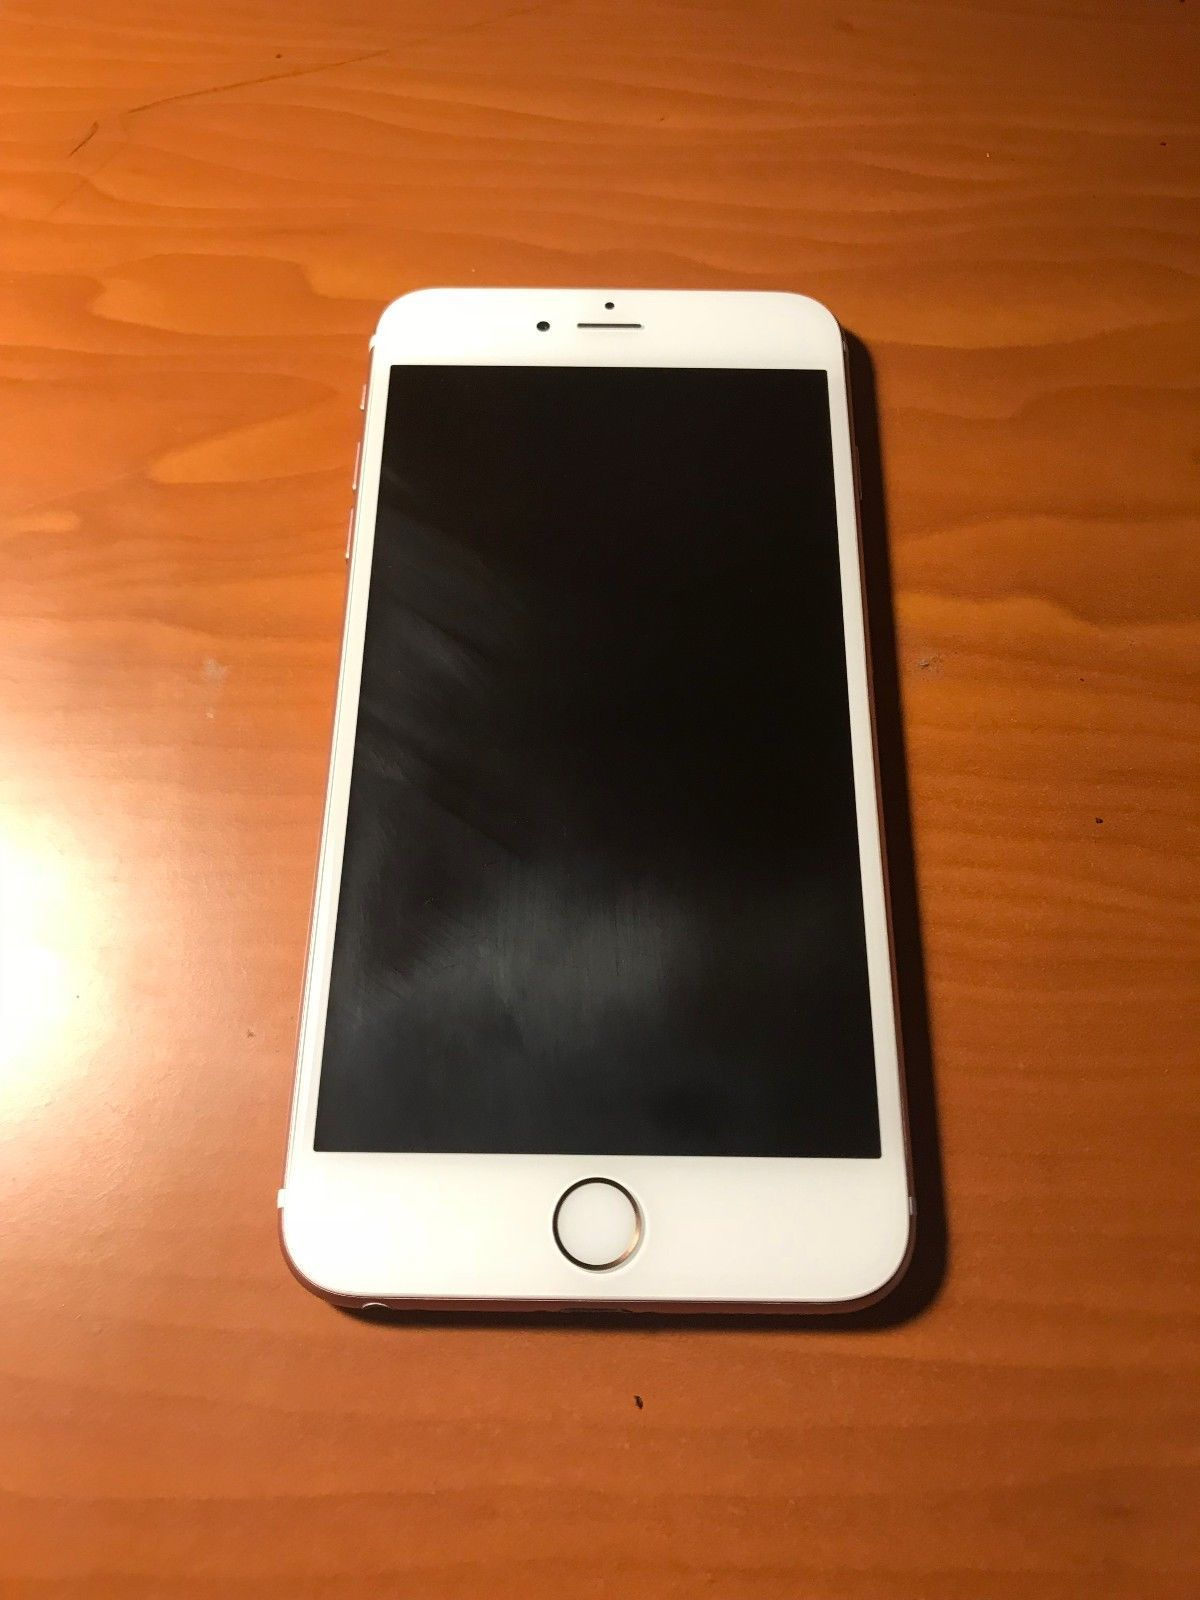 Apple Iphone 6s Plus 64gb Rose Gold At T A1634 Cdma Gsm